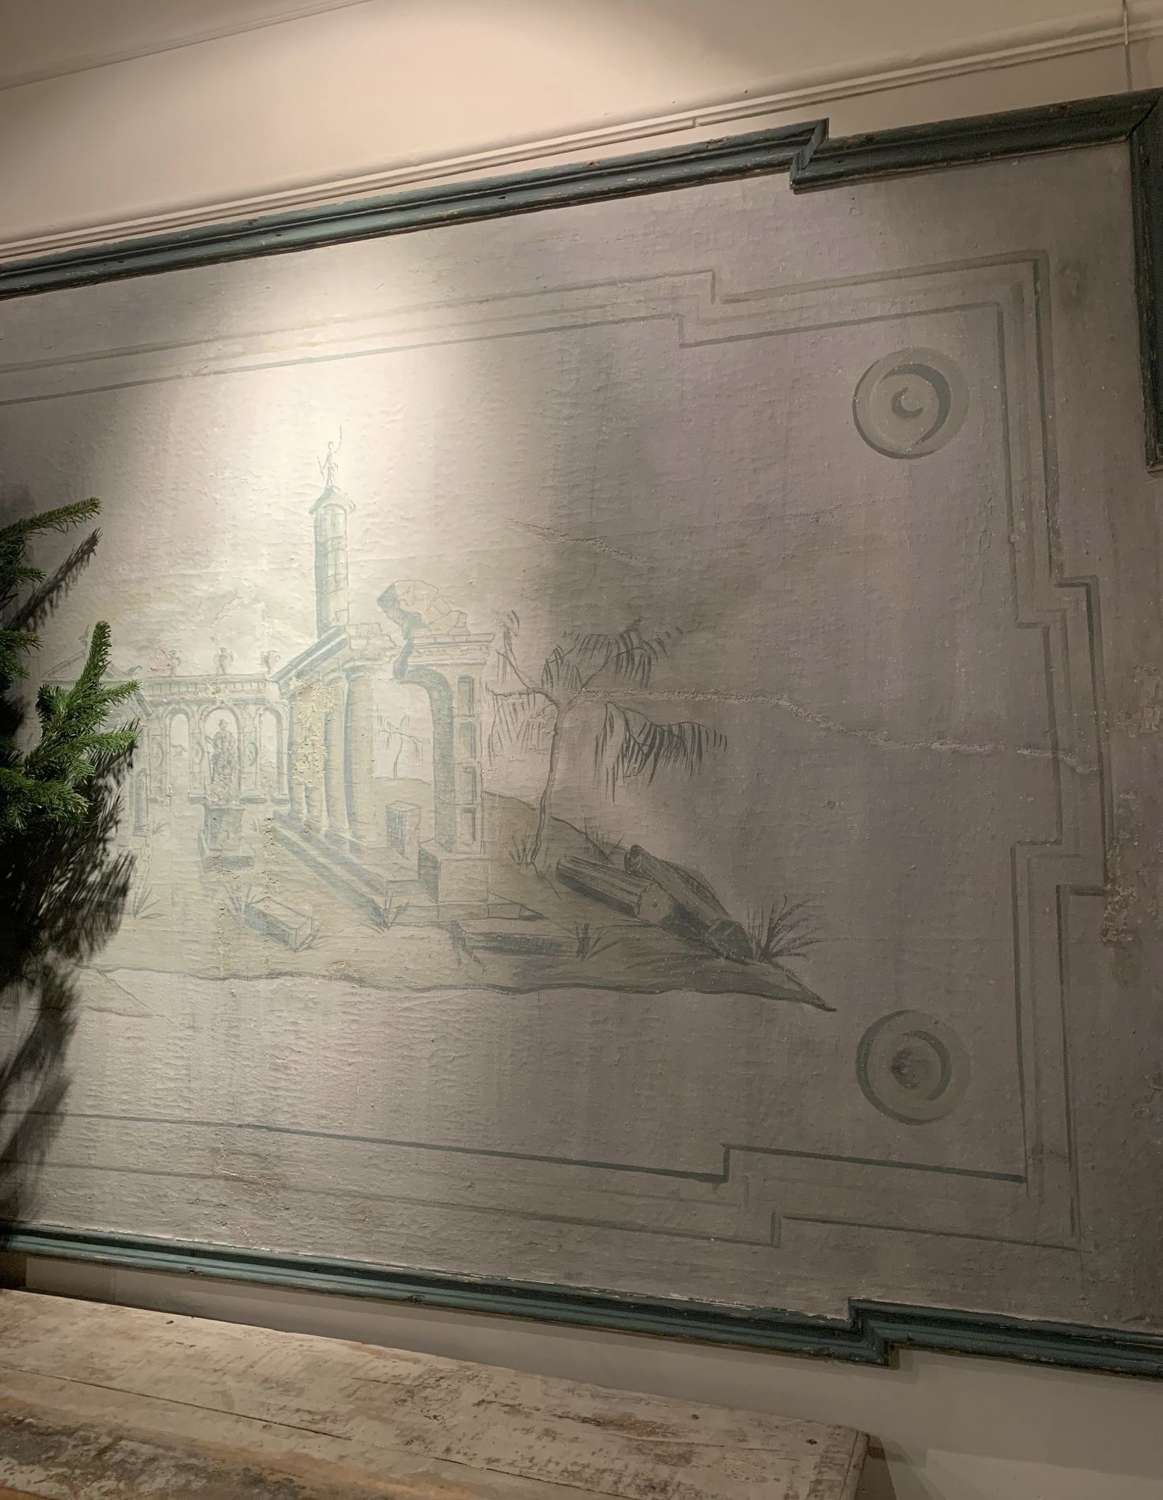 Italian Mural from the 1900s